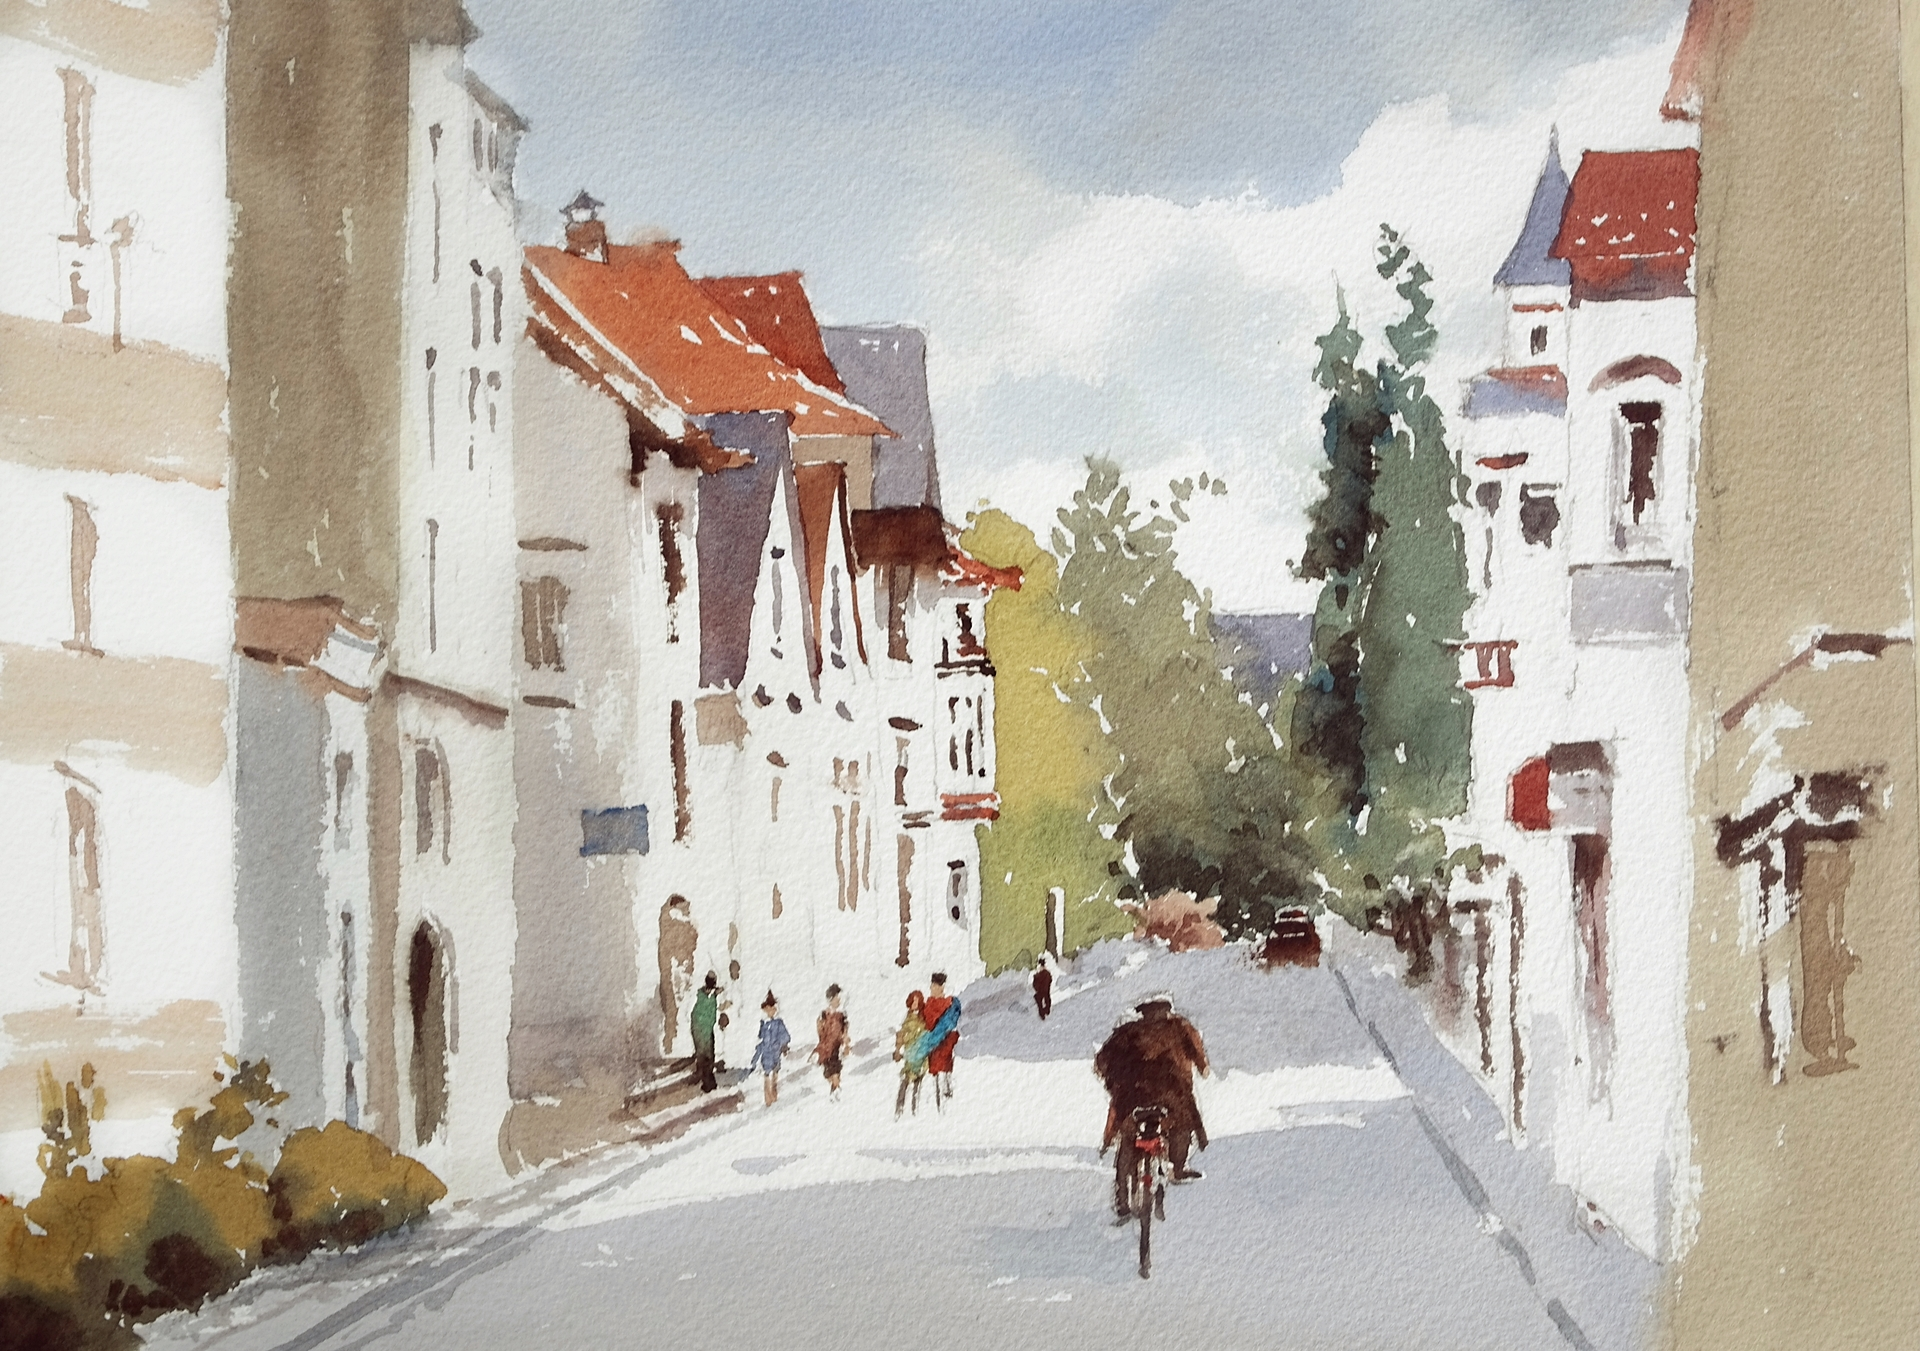 minekereinders.com watercolor first day of spring